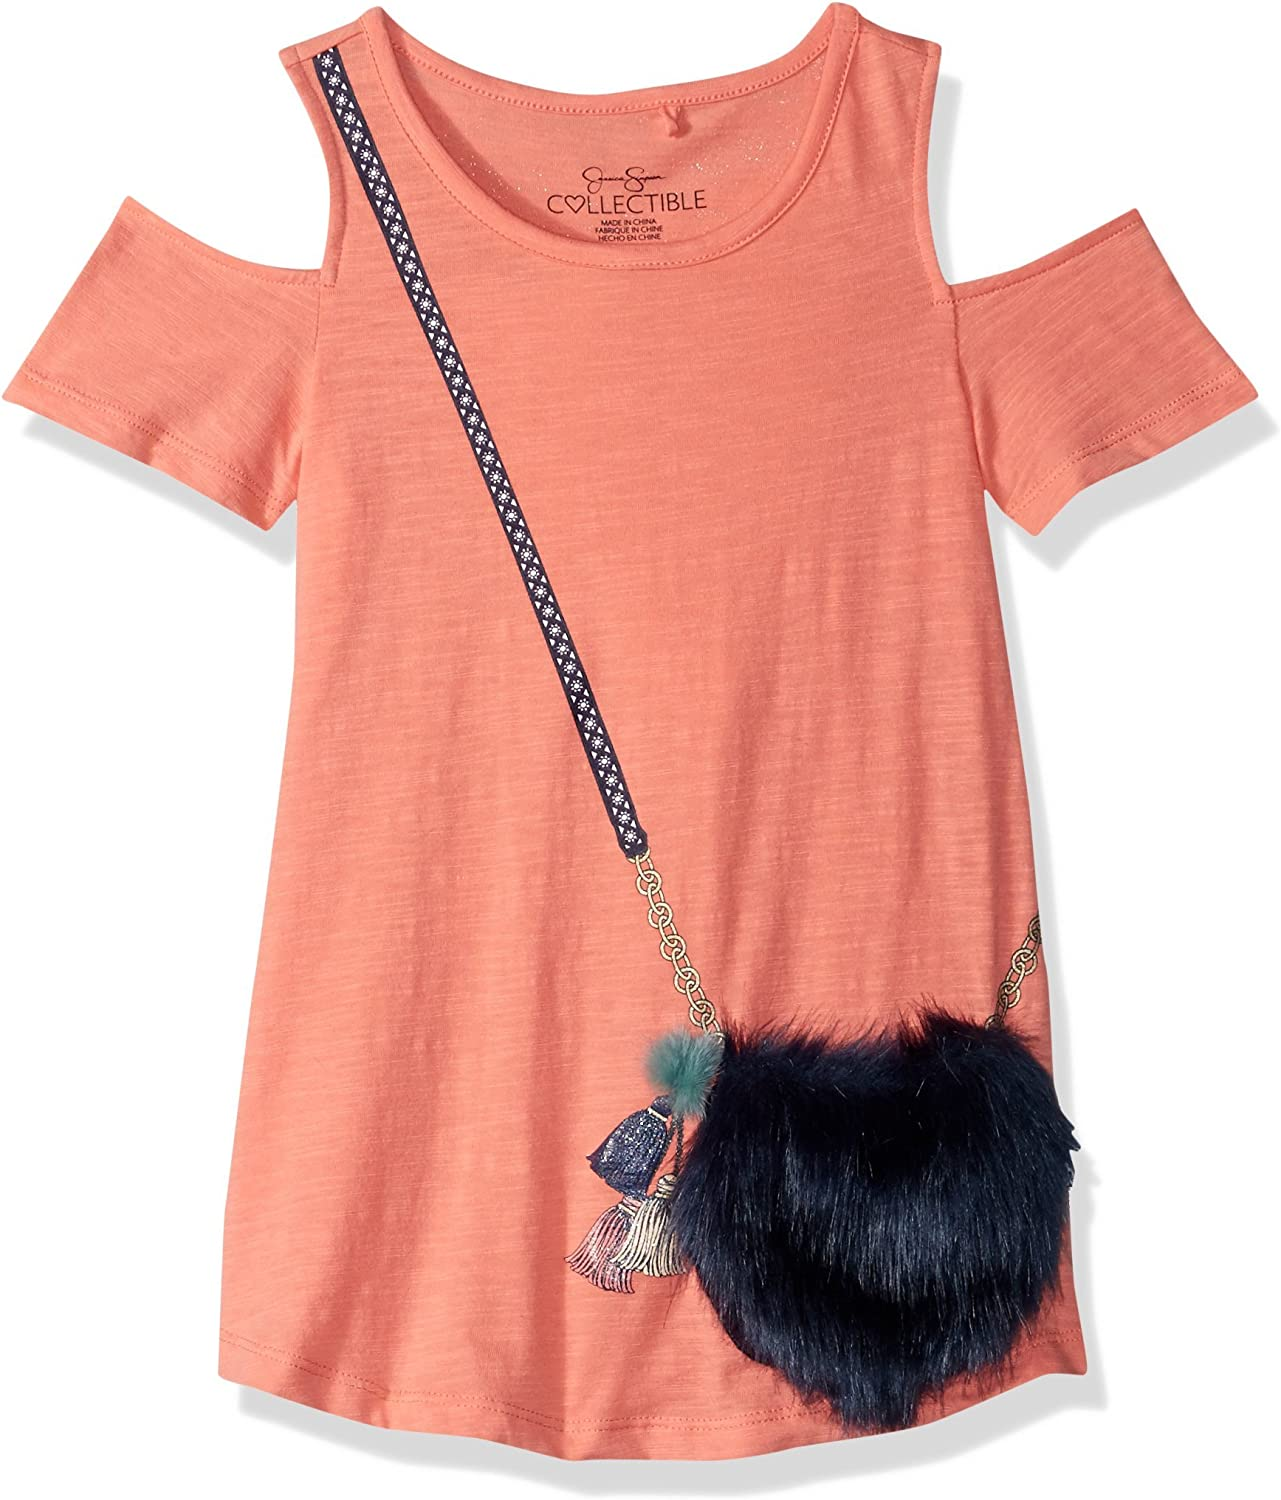 Jessica Simpson Girls Big Song Purse Tee